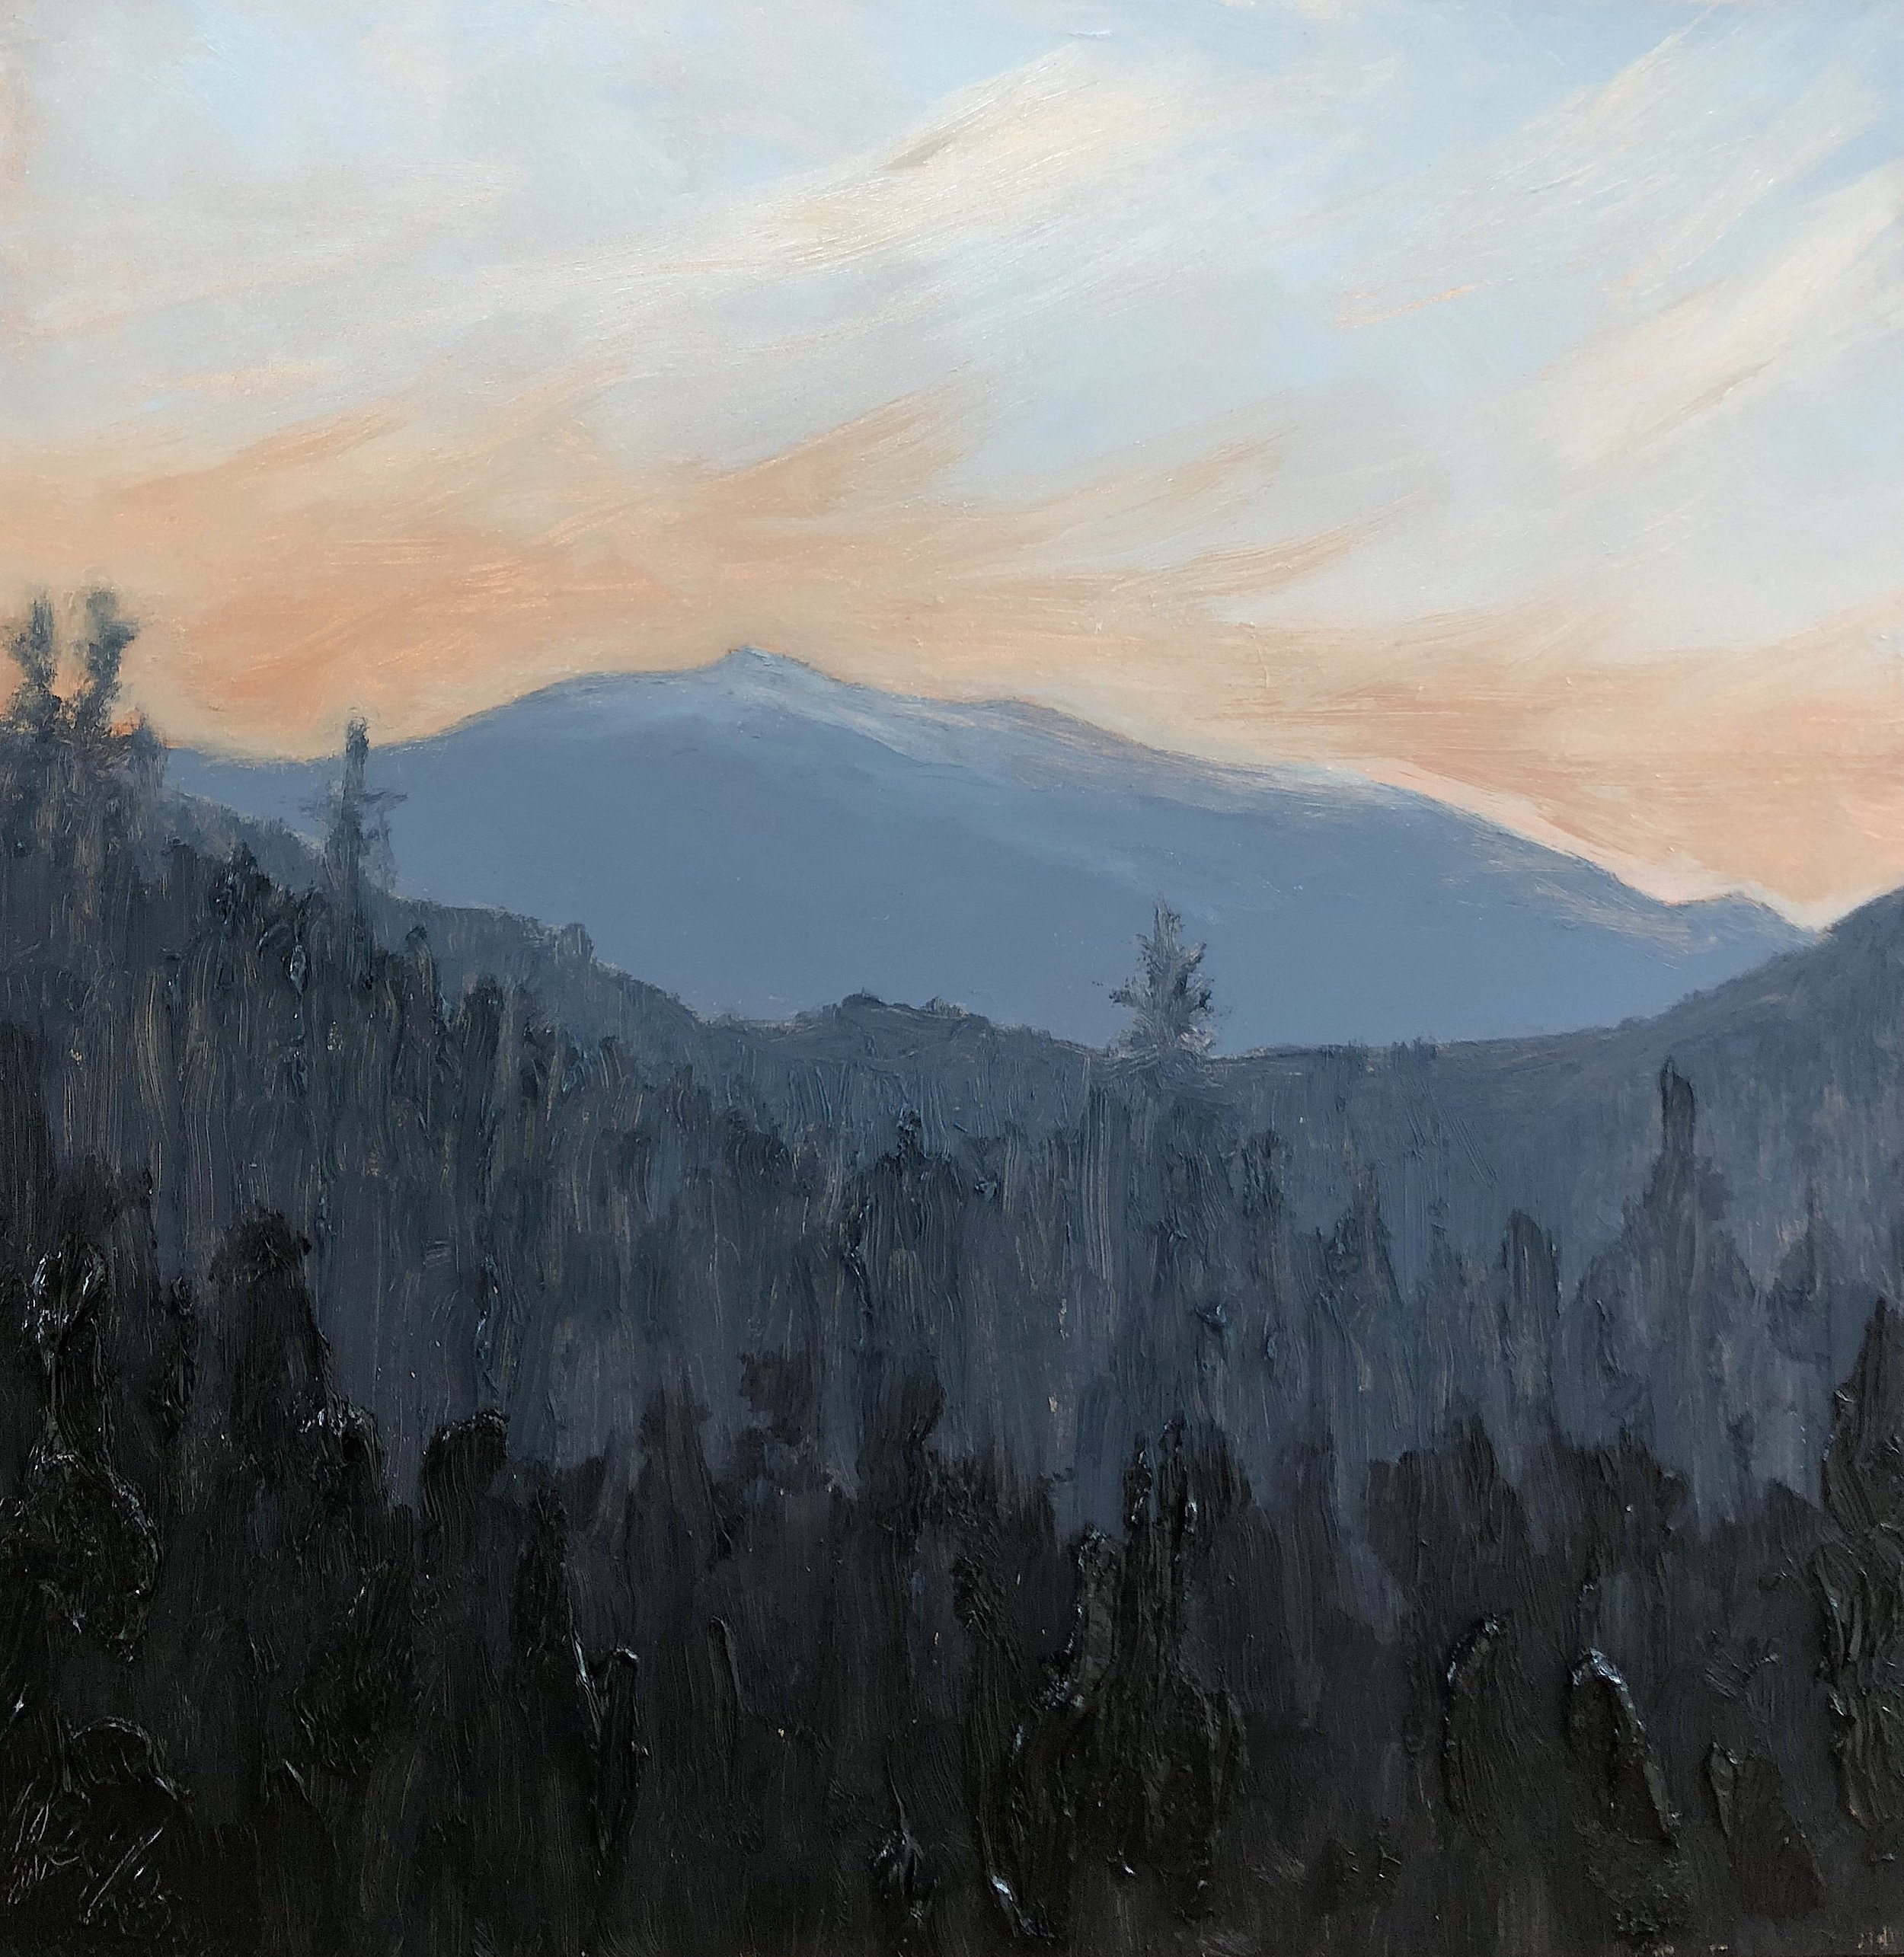 Ian Torney - Mt. Washington Summer Solstice Sunset 2018, from the 36 Views of Mt. Washington series, oil on board, 12 by 12 inches, 2018, $1000